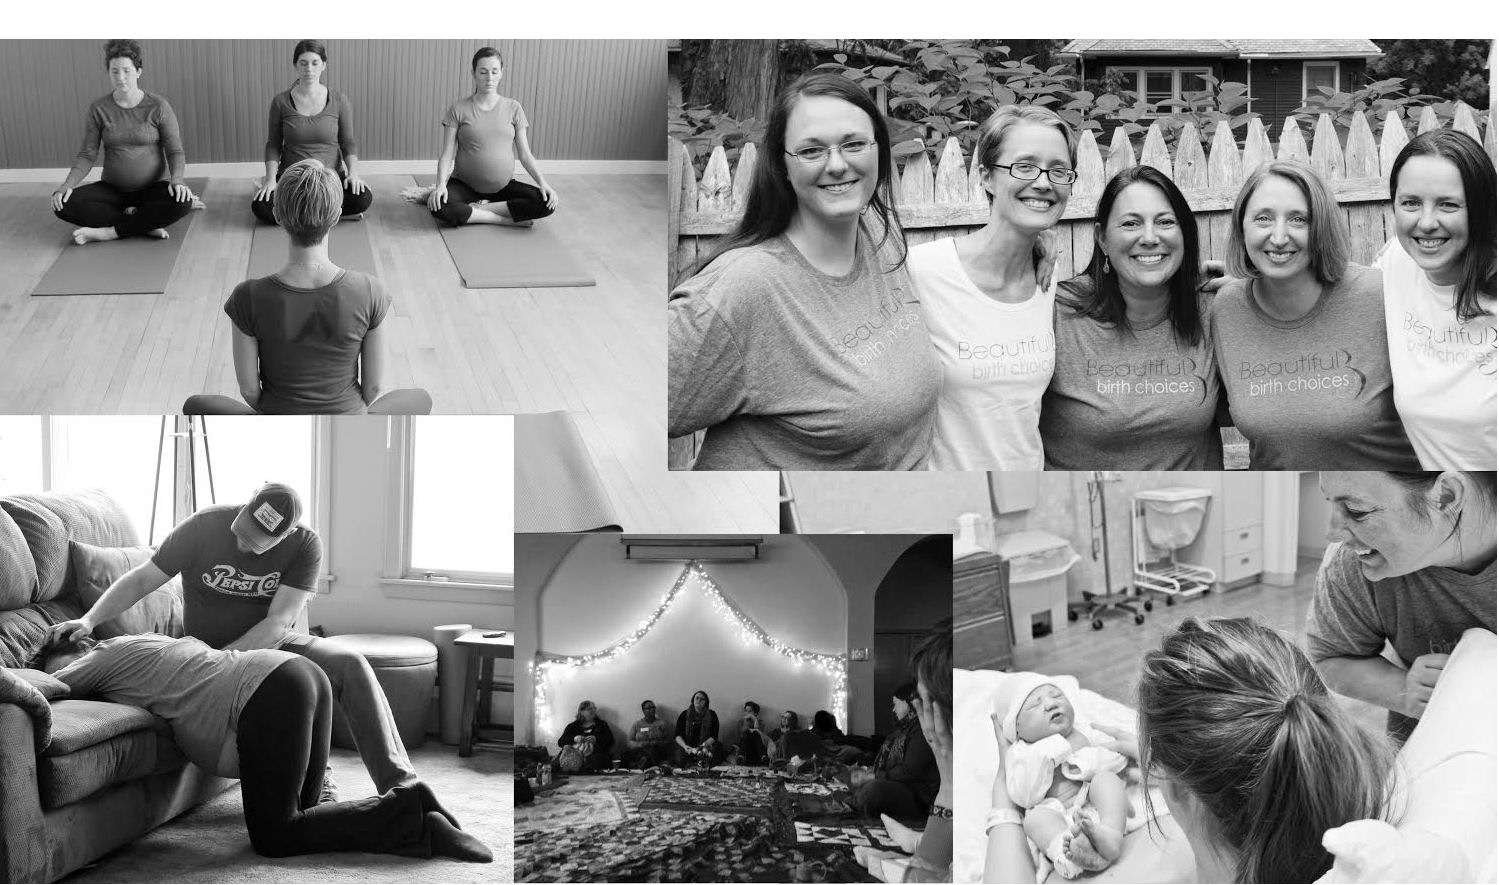 beautiful birth choices yoga studio and learning center - rochester